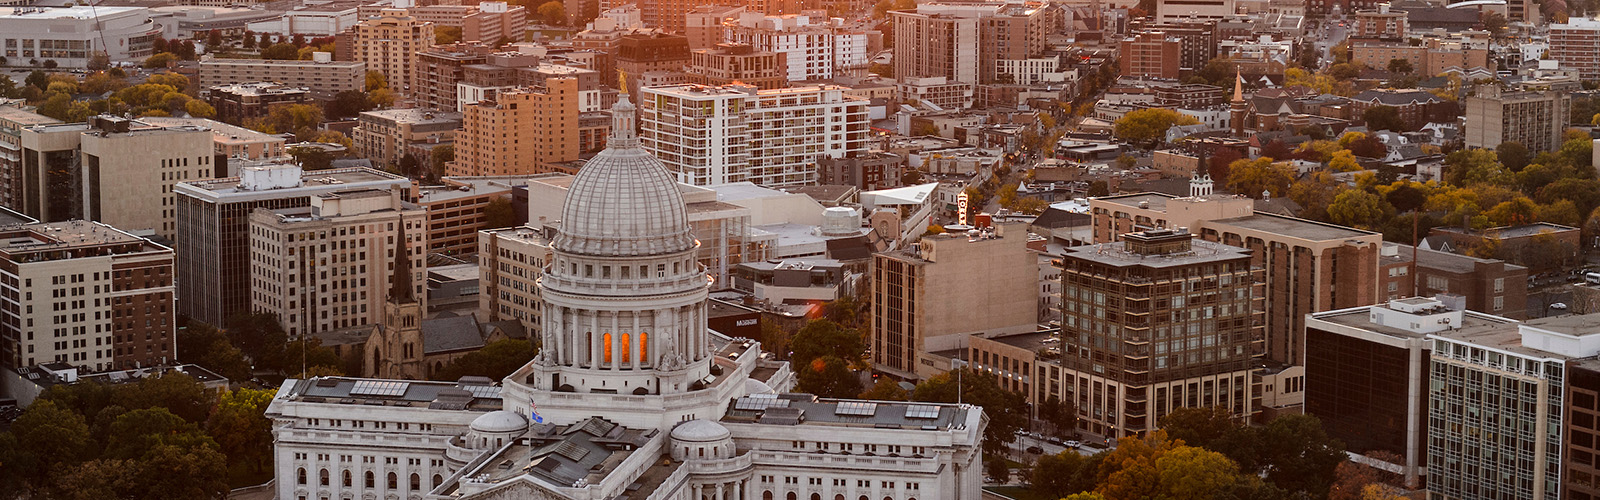 Wisconsin-Madison campus is pictured in a sunset aerial view during autumn